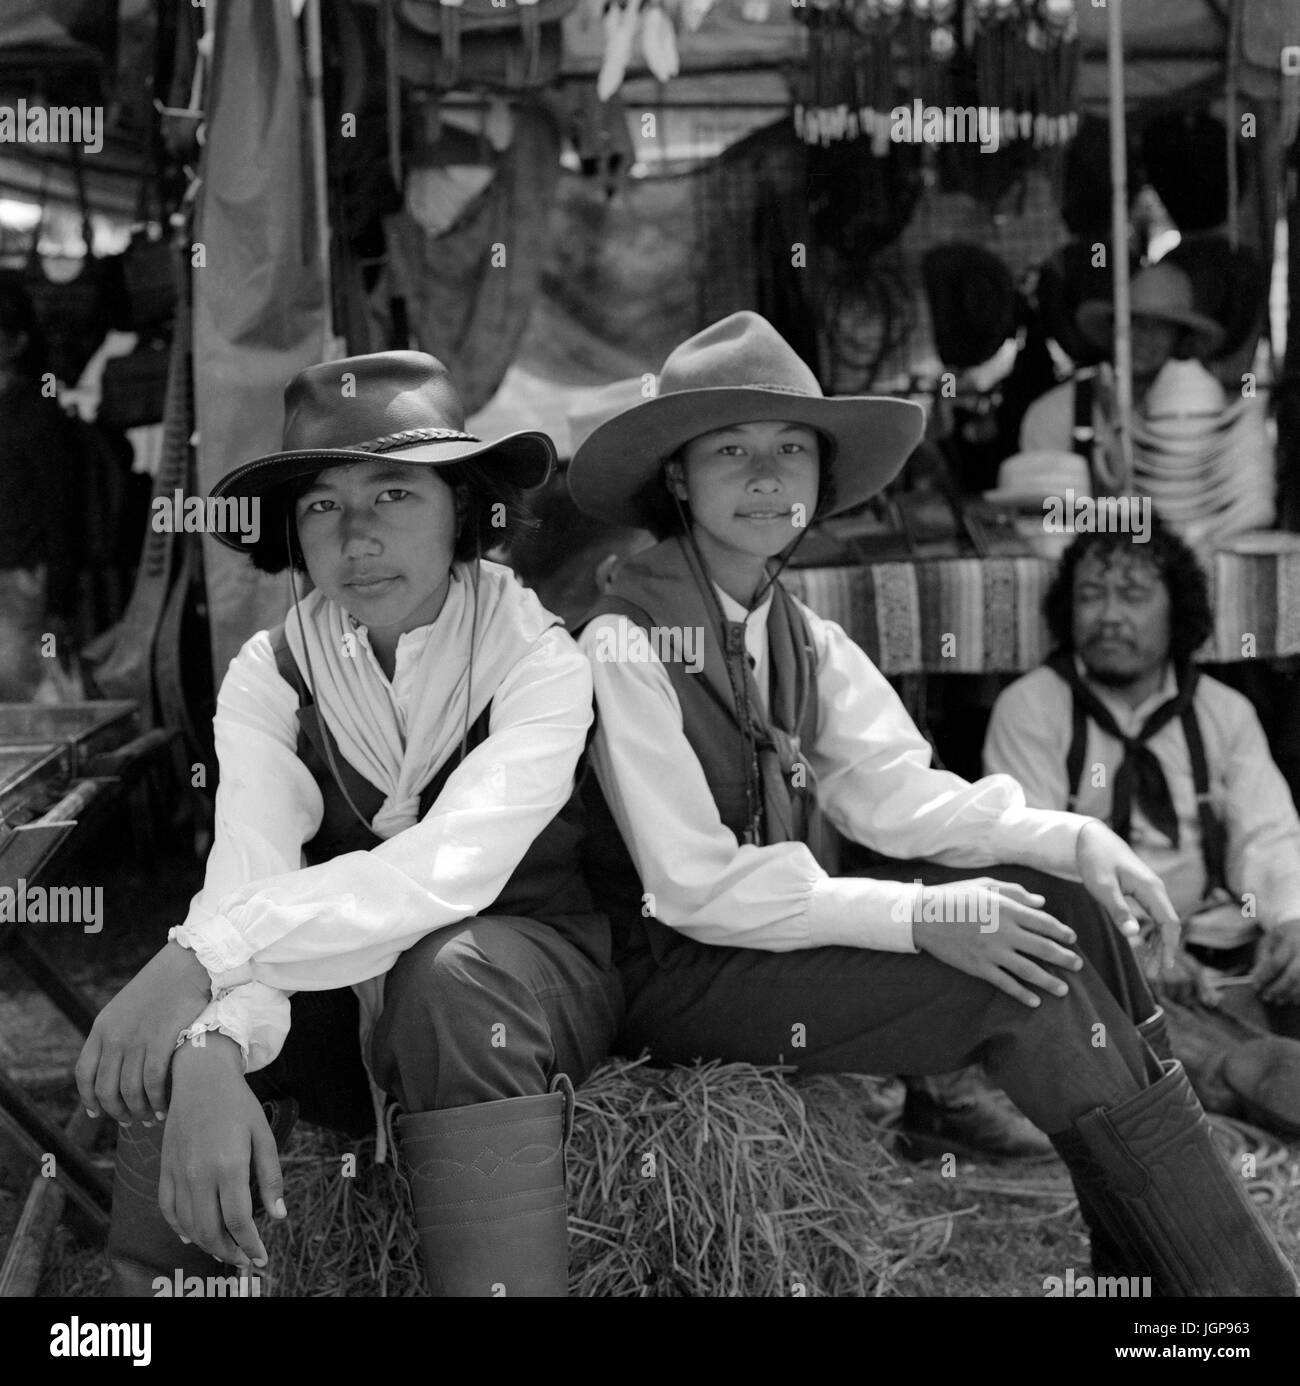 c75143b2ce382 Black and white photography portrait of two young Thailand girls dressed in  Western cowgirls attire at